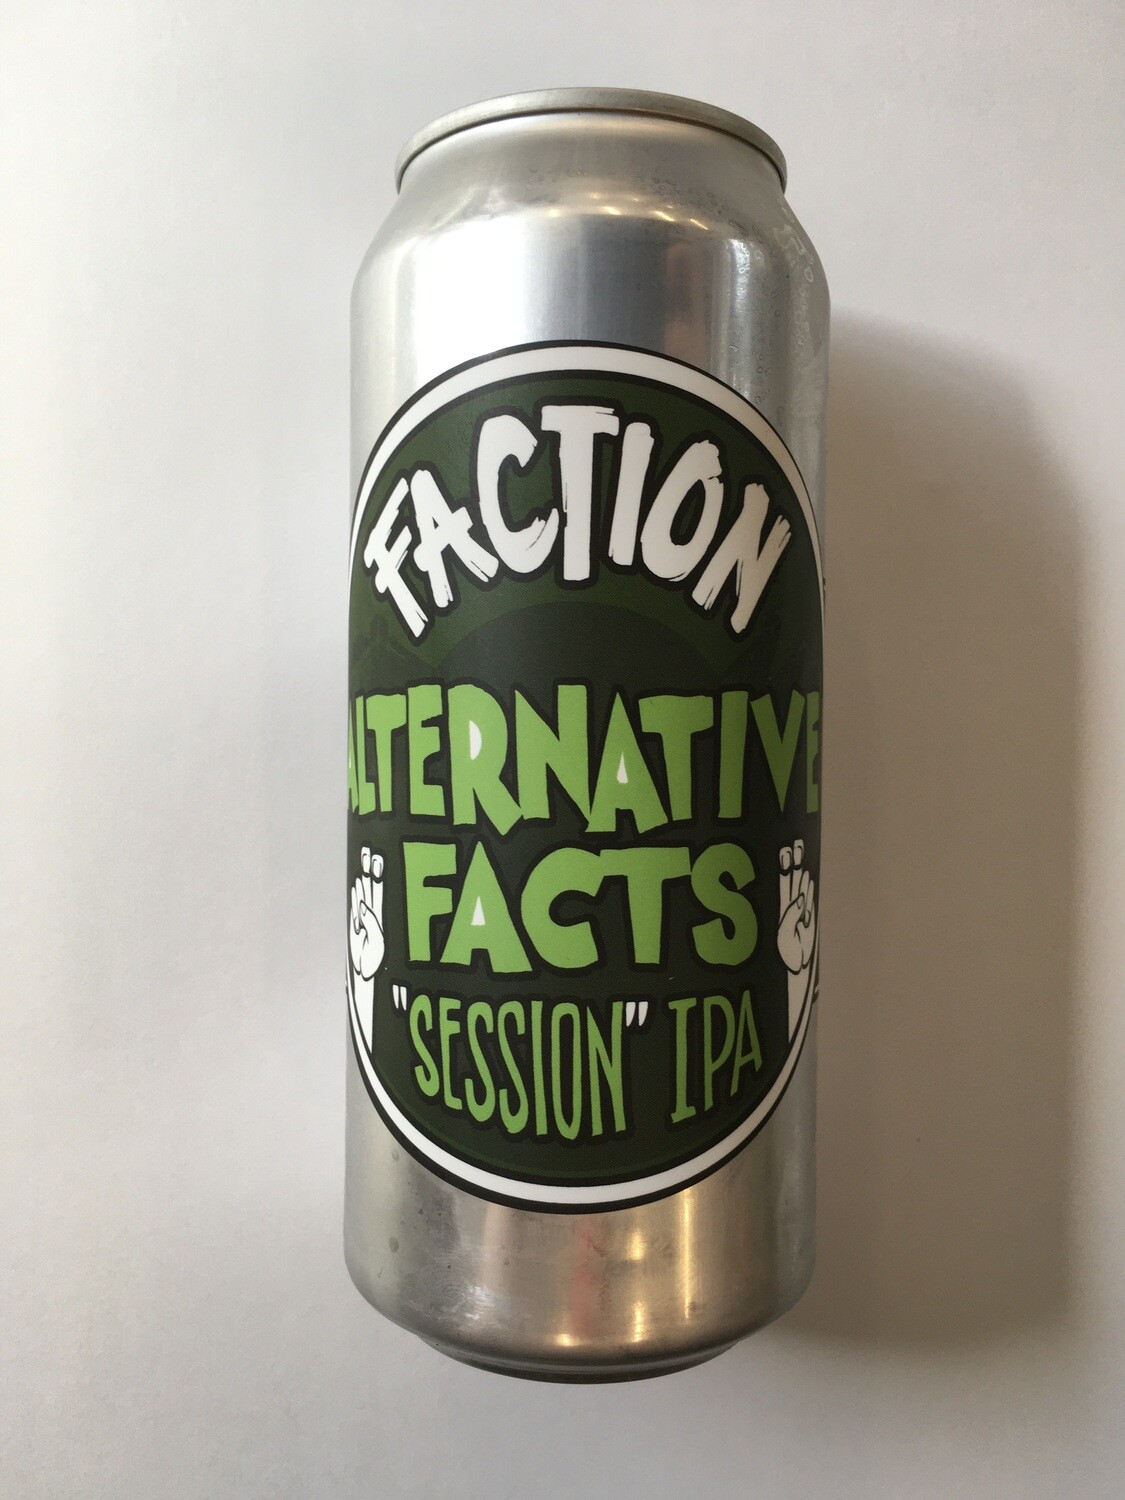 Beer / 16 oz / Faction, Alternative Facts 16 oz